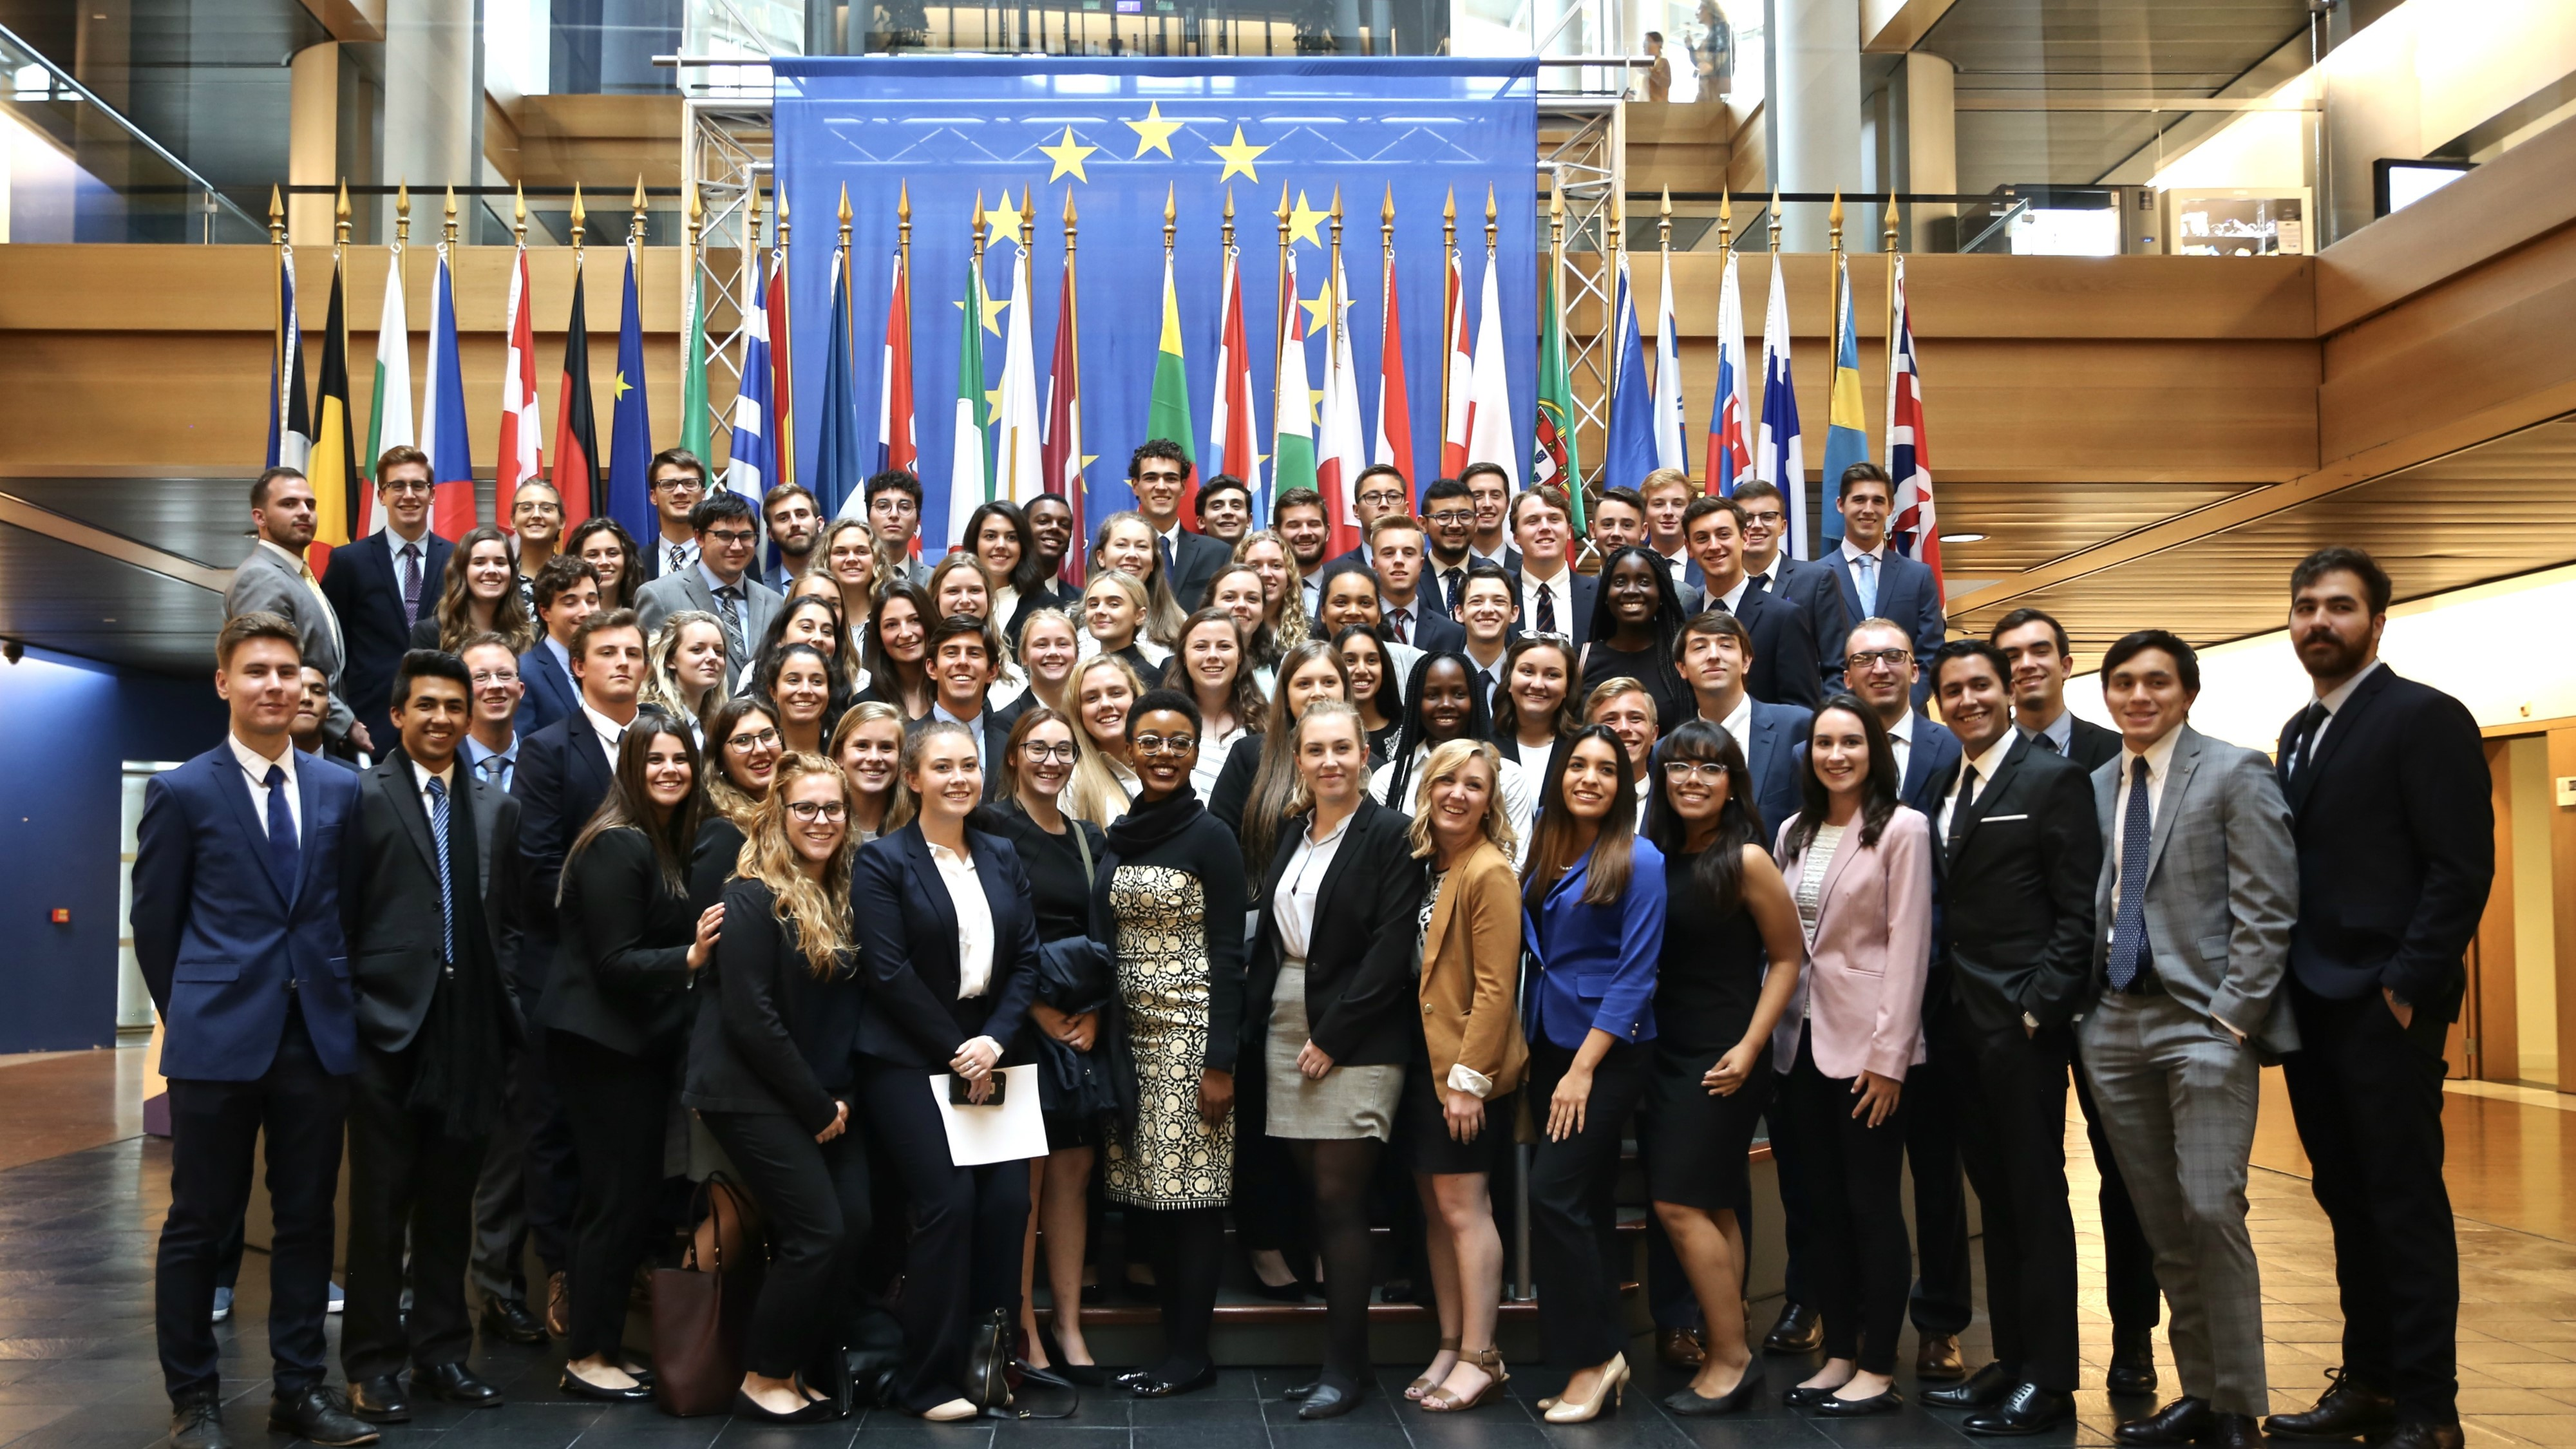 a group of students in business attire in front of world flags